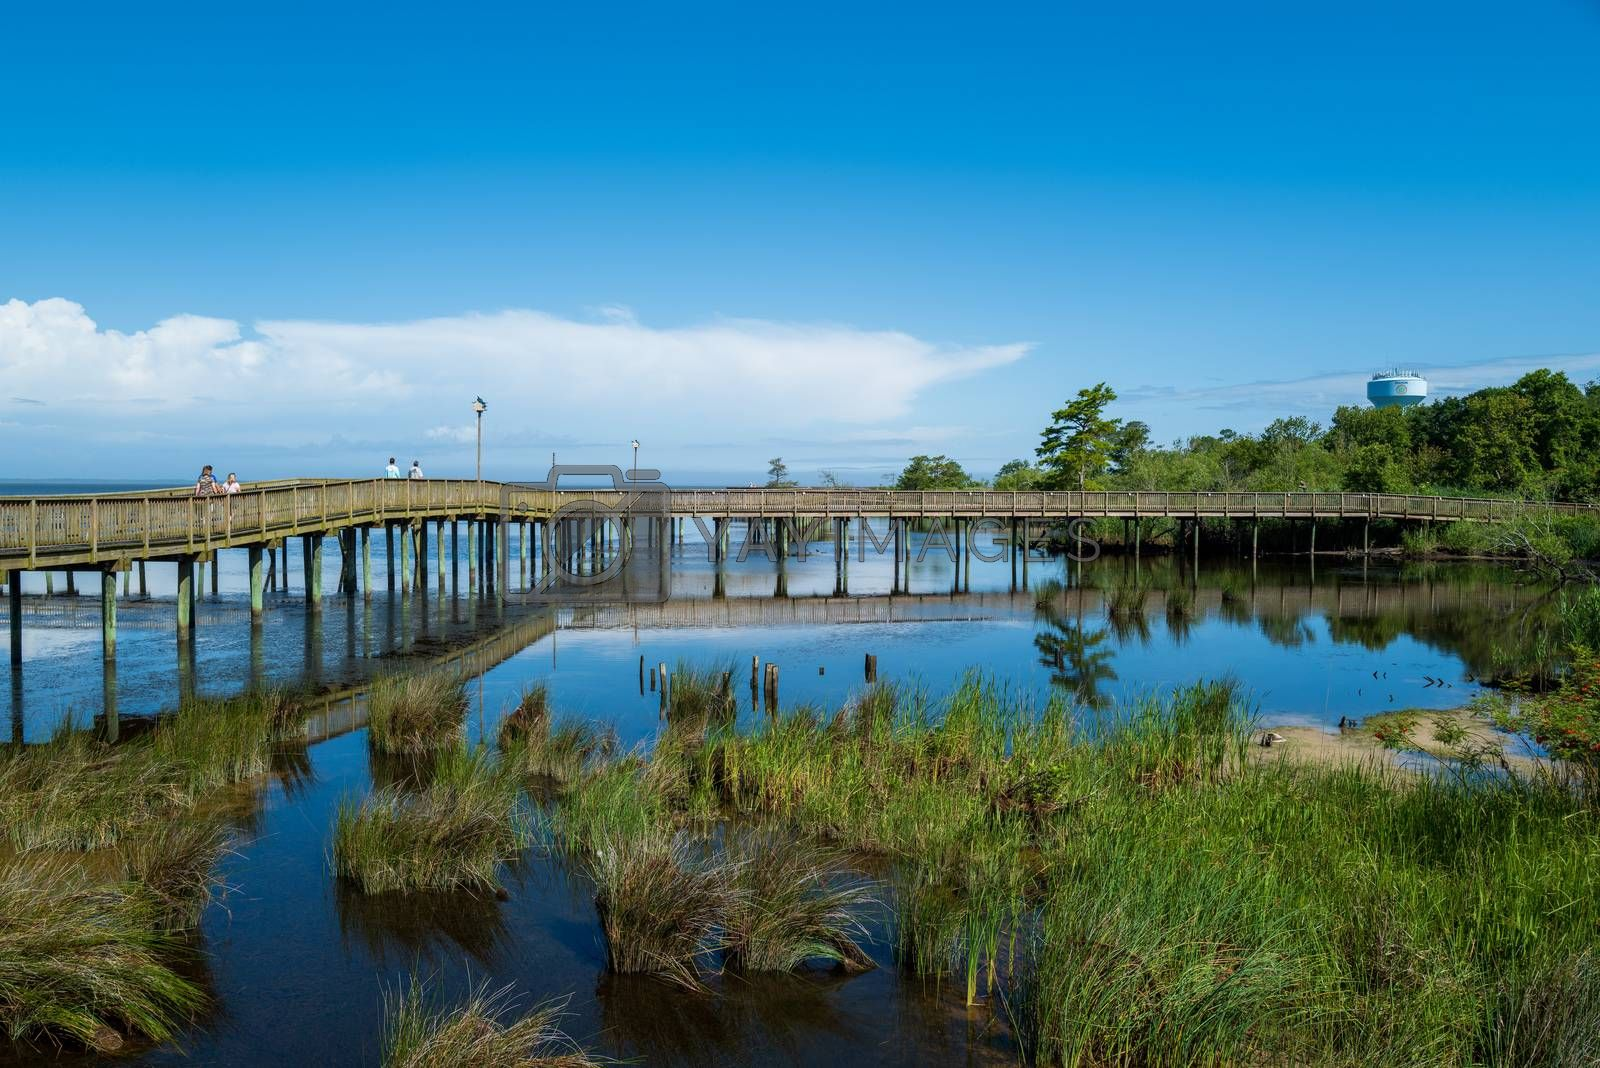 Duck, North Carolina, USA -- June 17, 2020.  A wide angle photo of the boardwalk that crosses over the water of Currituck Sound in Duck, NC.